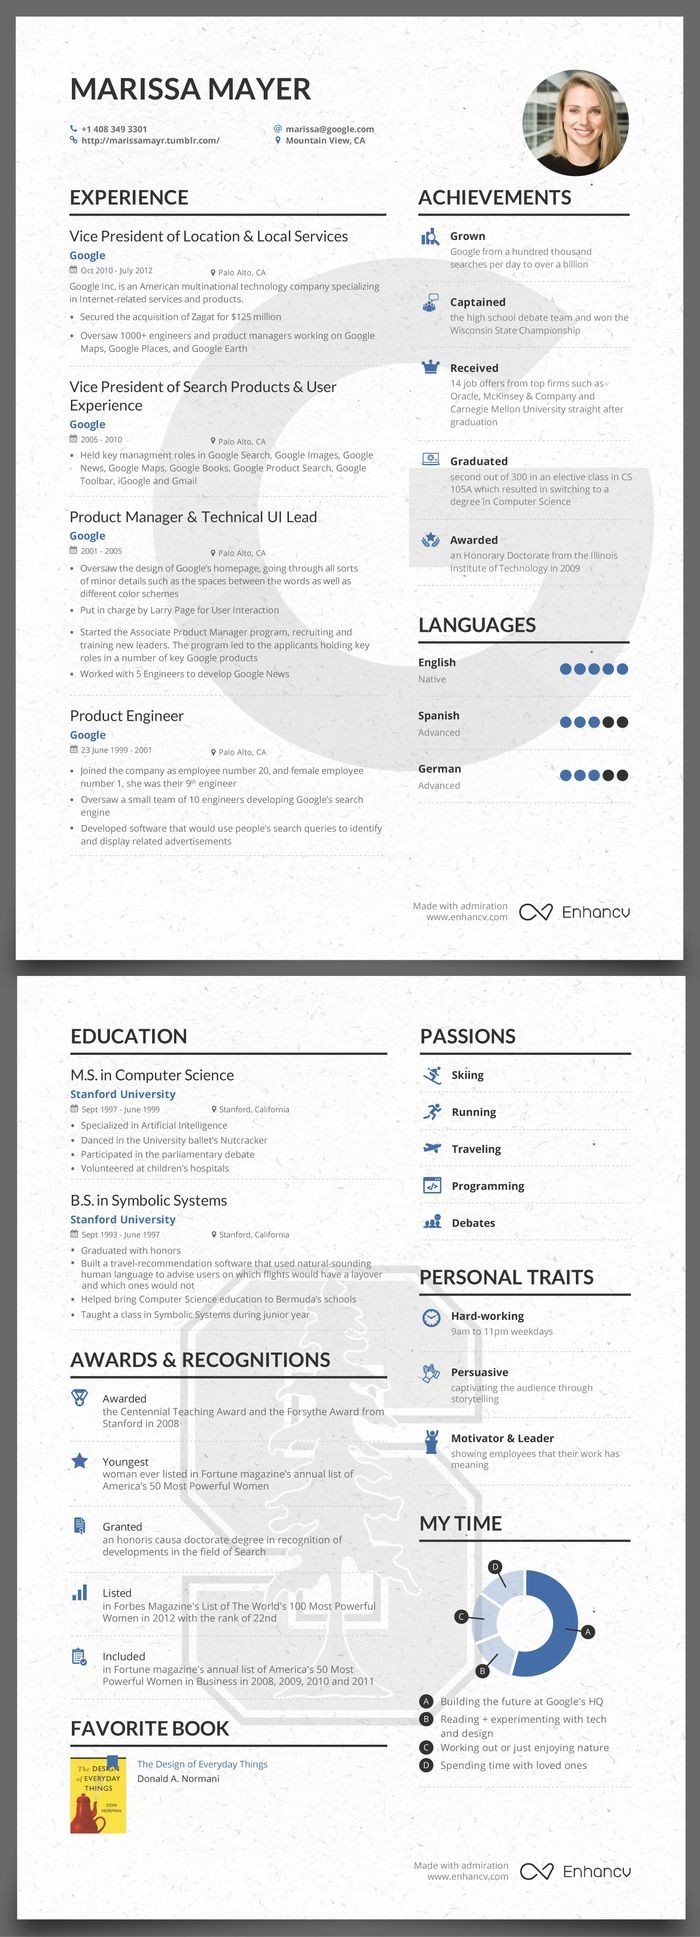 Marissa Mayer Resume Template Word - Marissa Mayer Resume Best Strong Resume Words Fresh Great